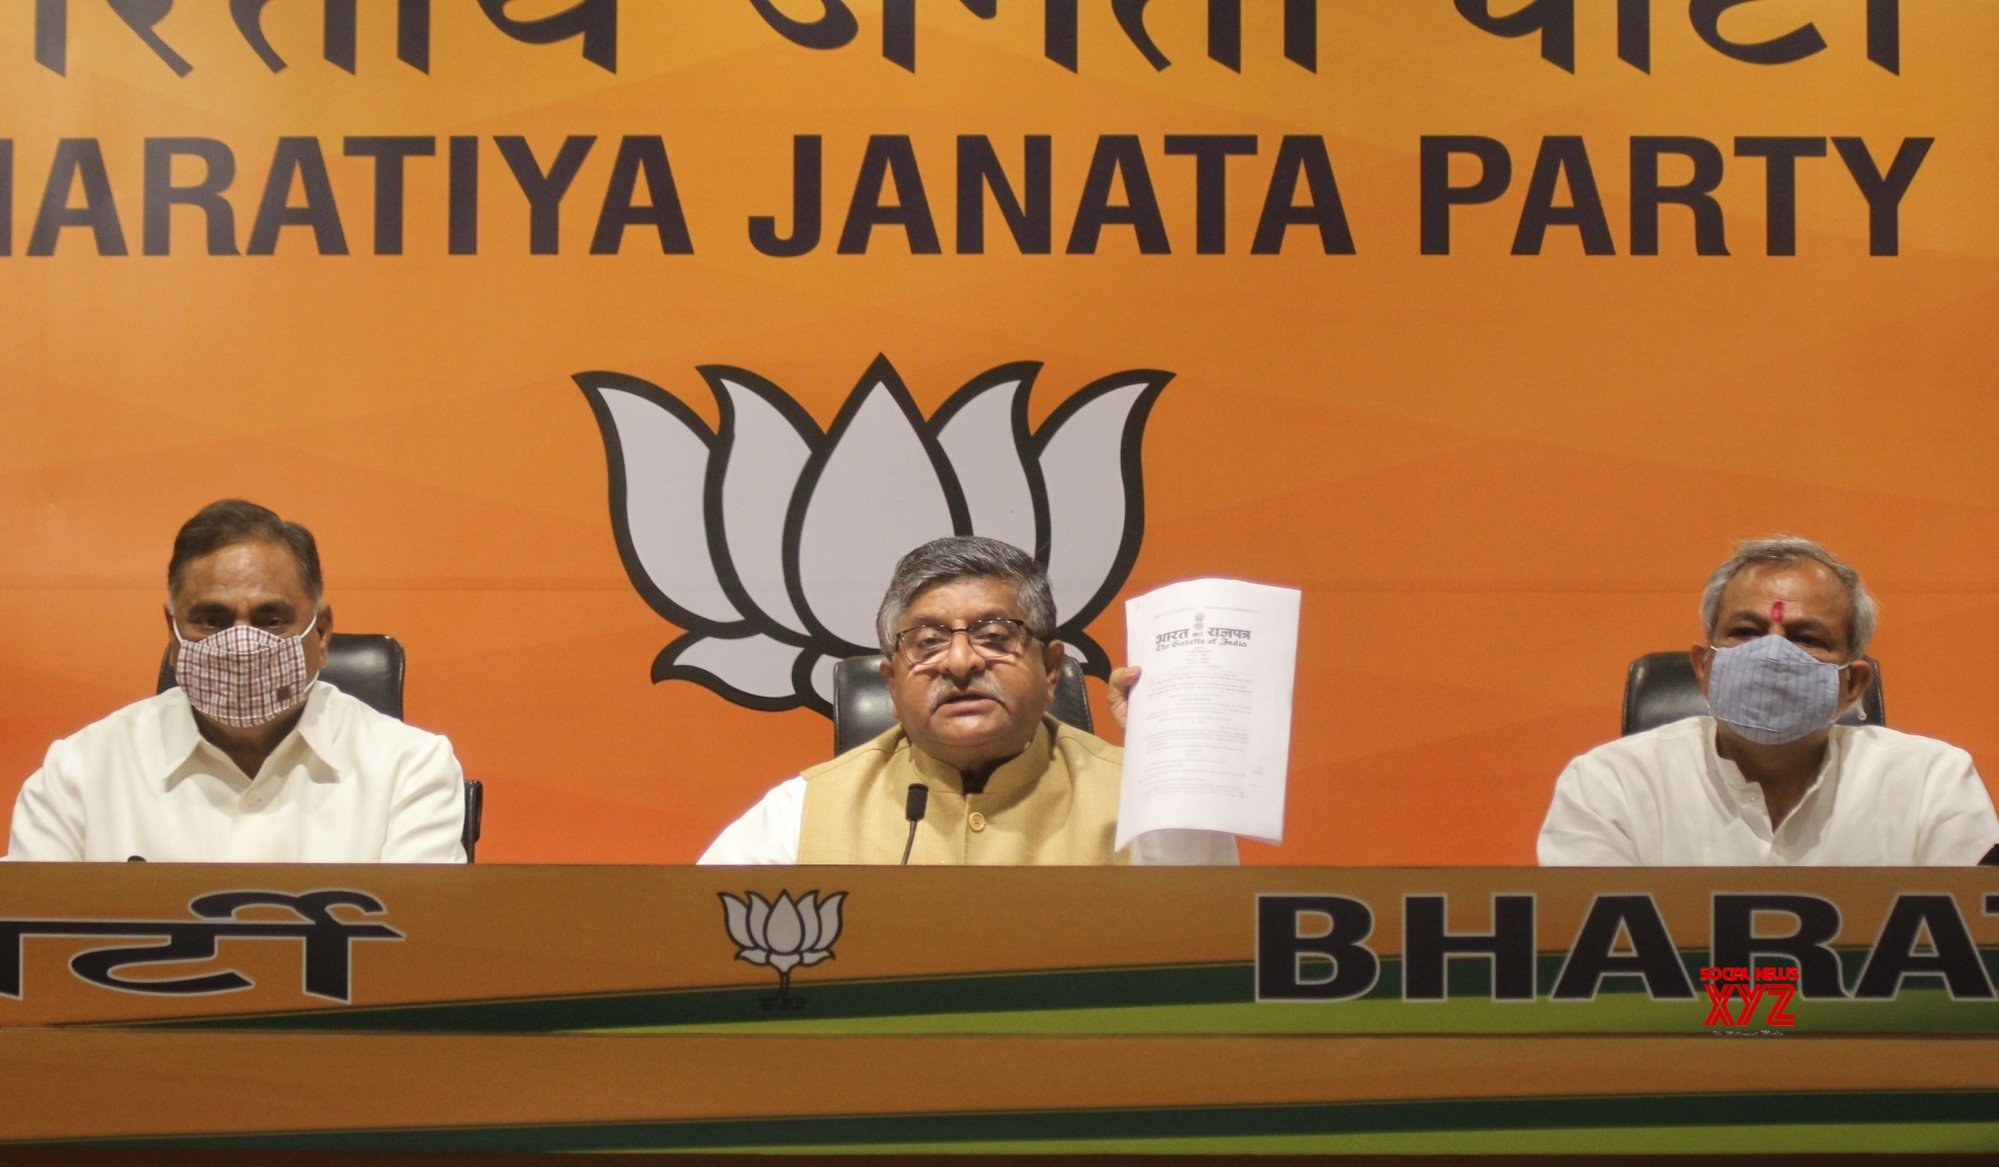 New Delhi : Union Minister - Law and Justice, Electronics and Information Technology and Communications Ravi Shankar Prasad, Adesh Gupta, LoP Rambir Singh Bidhudi and others address a press conference in New Delhi. #Gallery